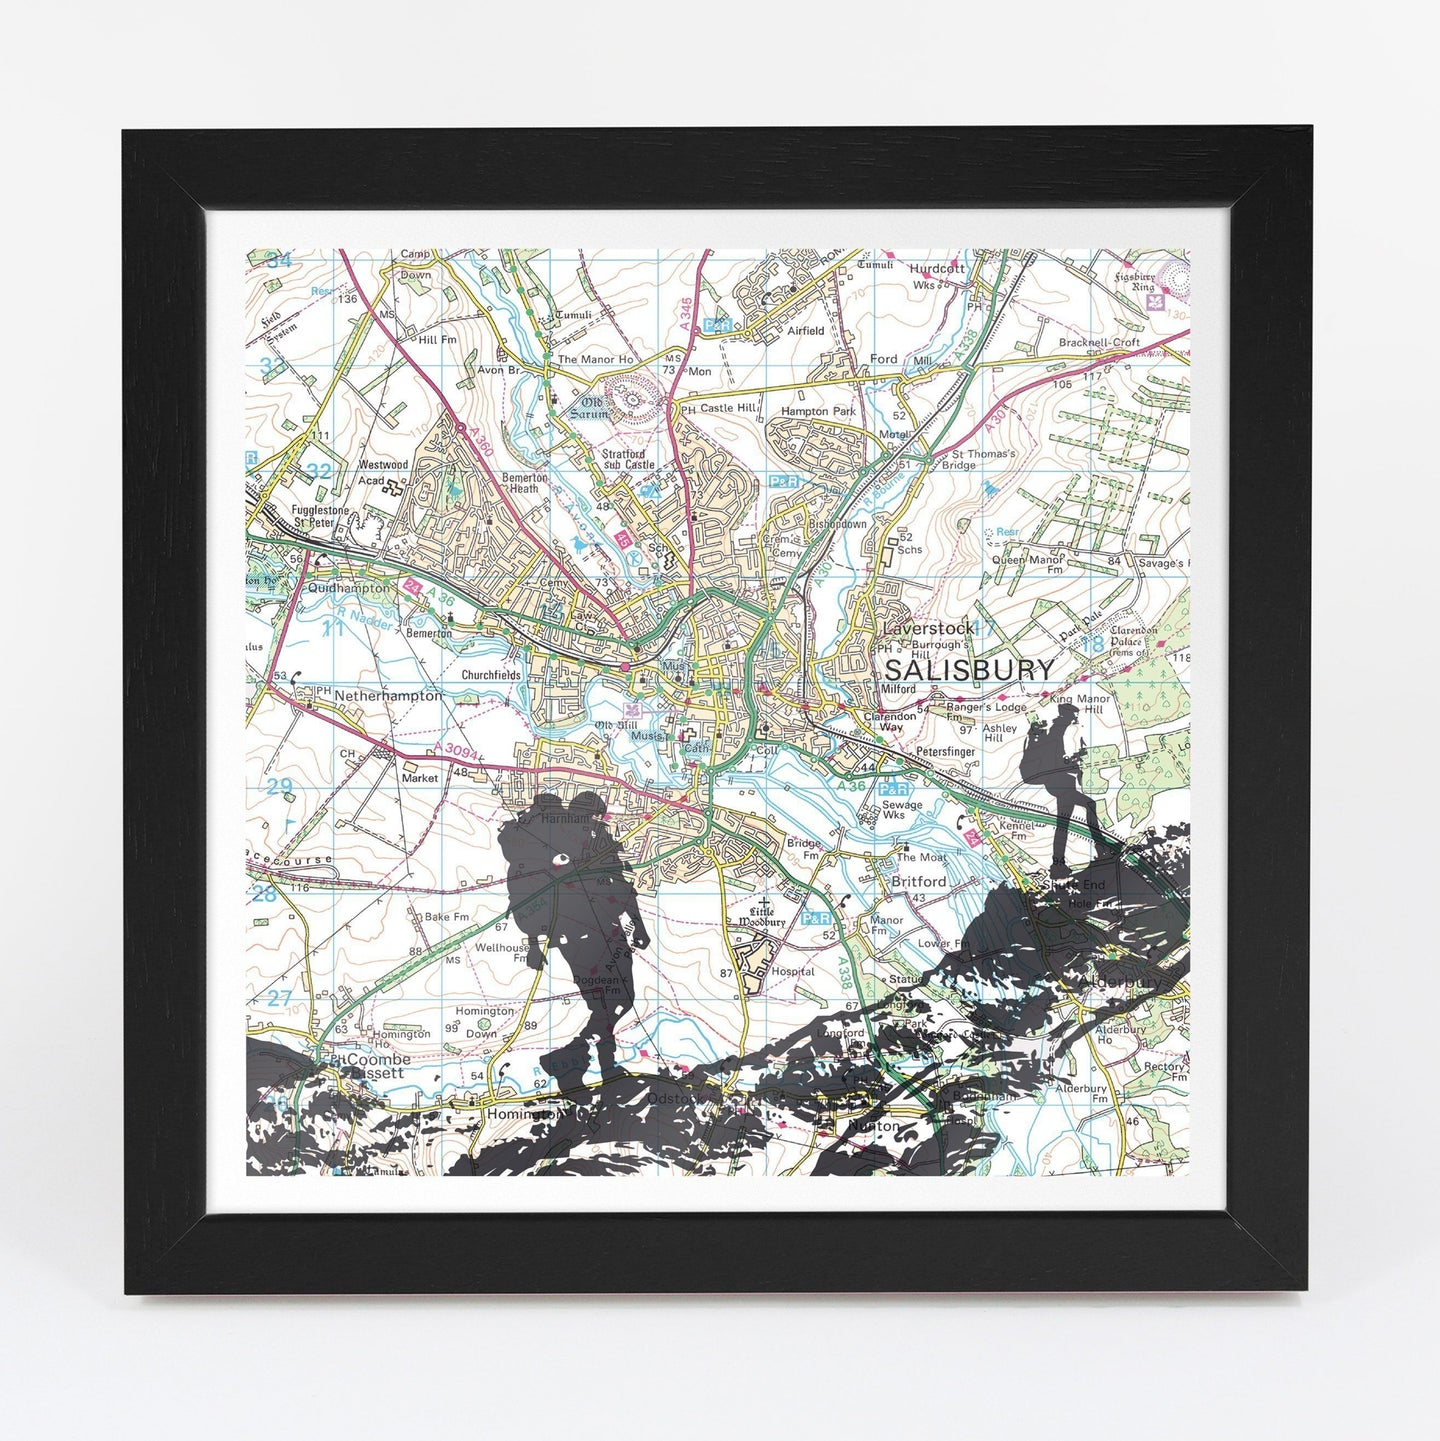 Wall Art - Personalised Hiking Adventure Map